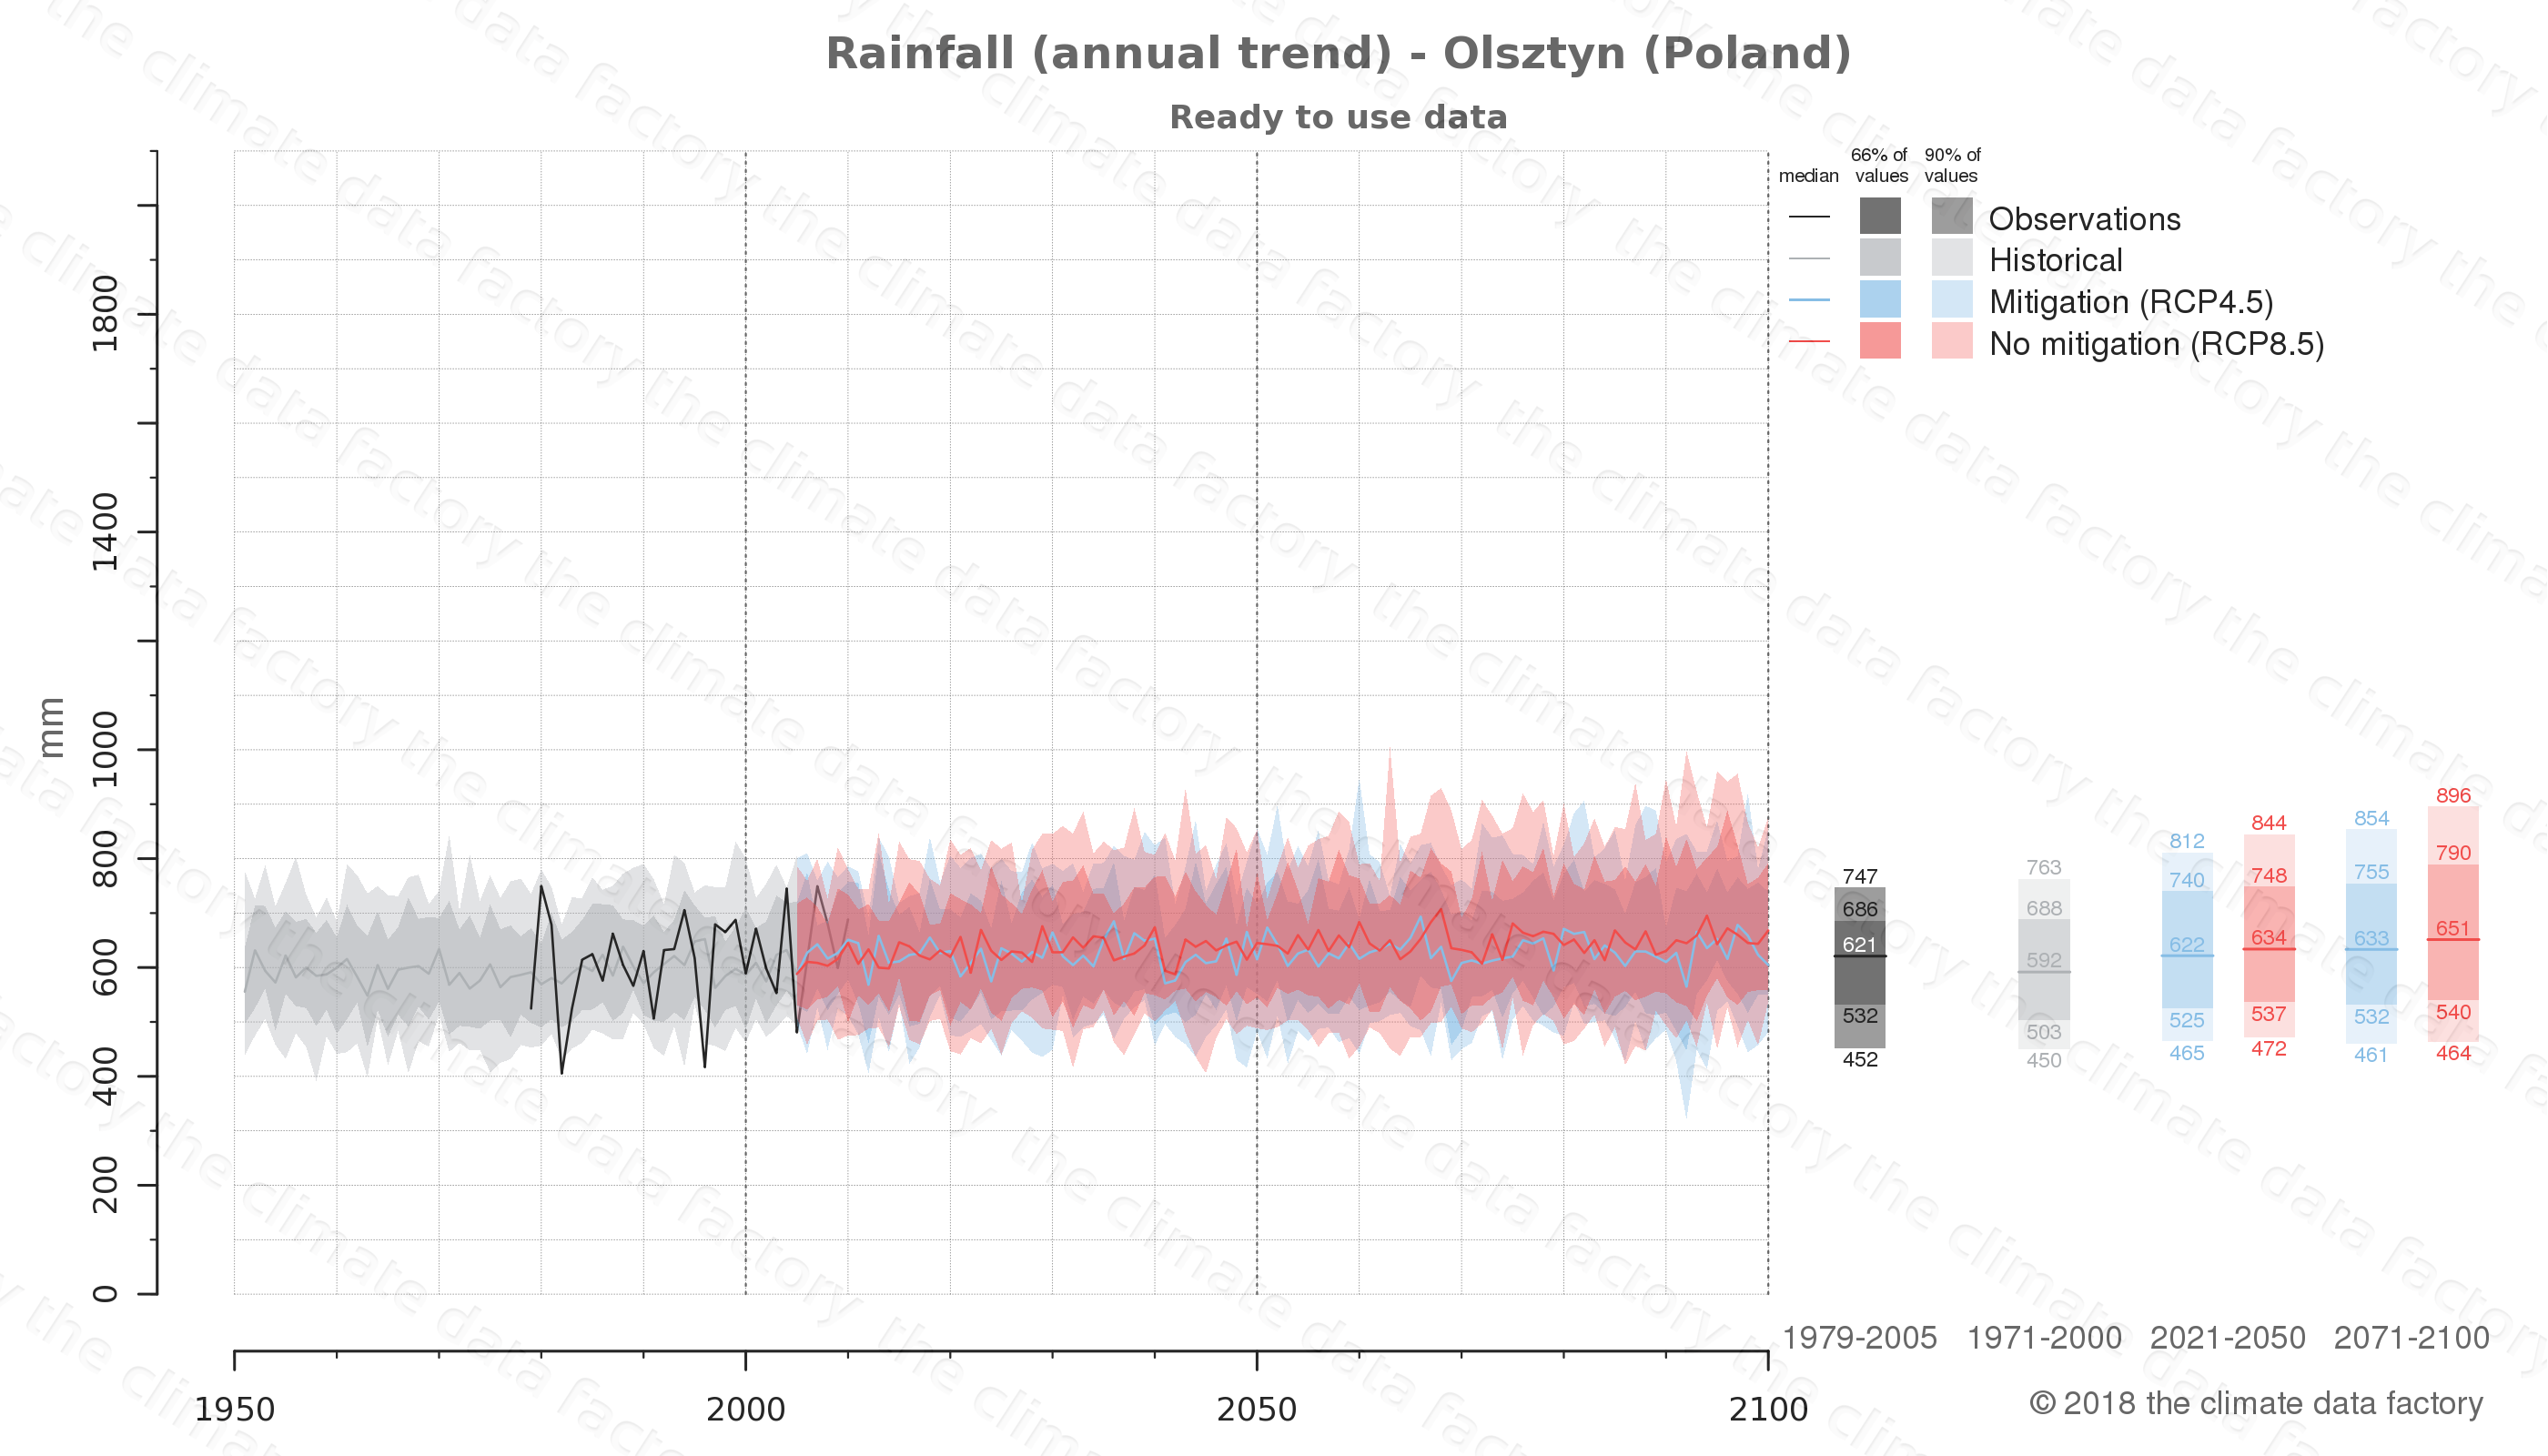 climate change data policy adaptation climate graph city data rainfall olsztyn poland